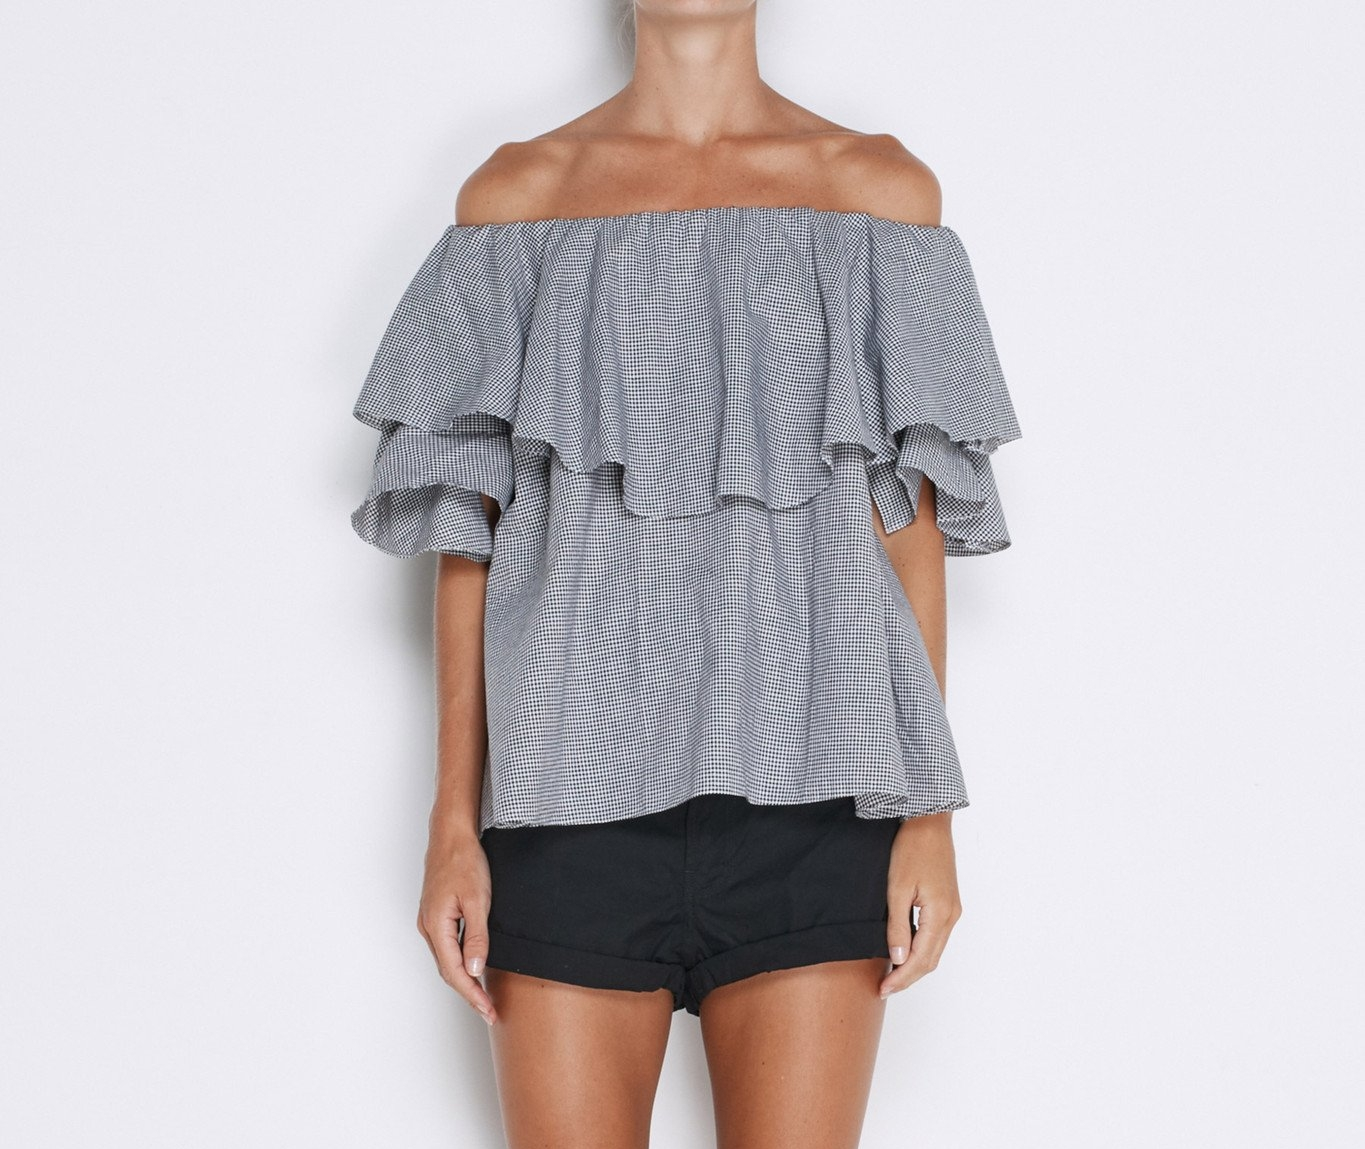 MLM LABEL |  MAISON TOP IN BLACK & WHITE GINGHAM